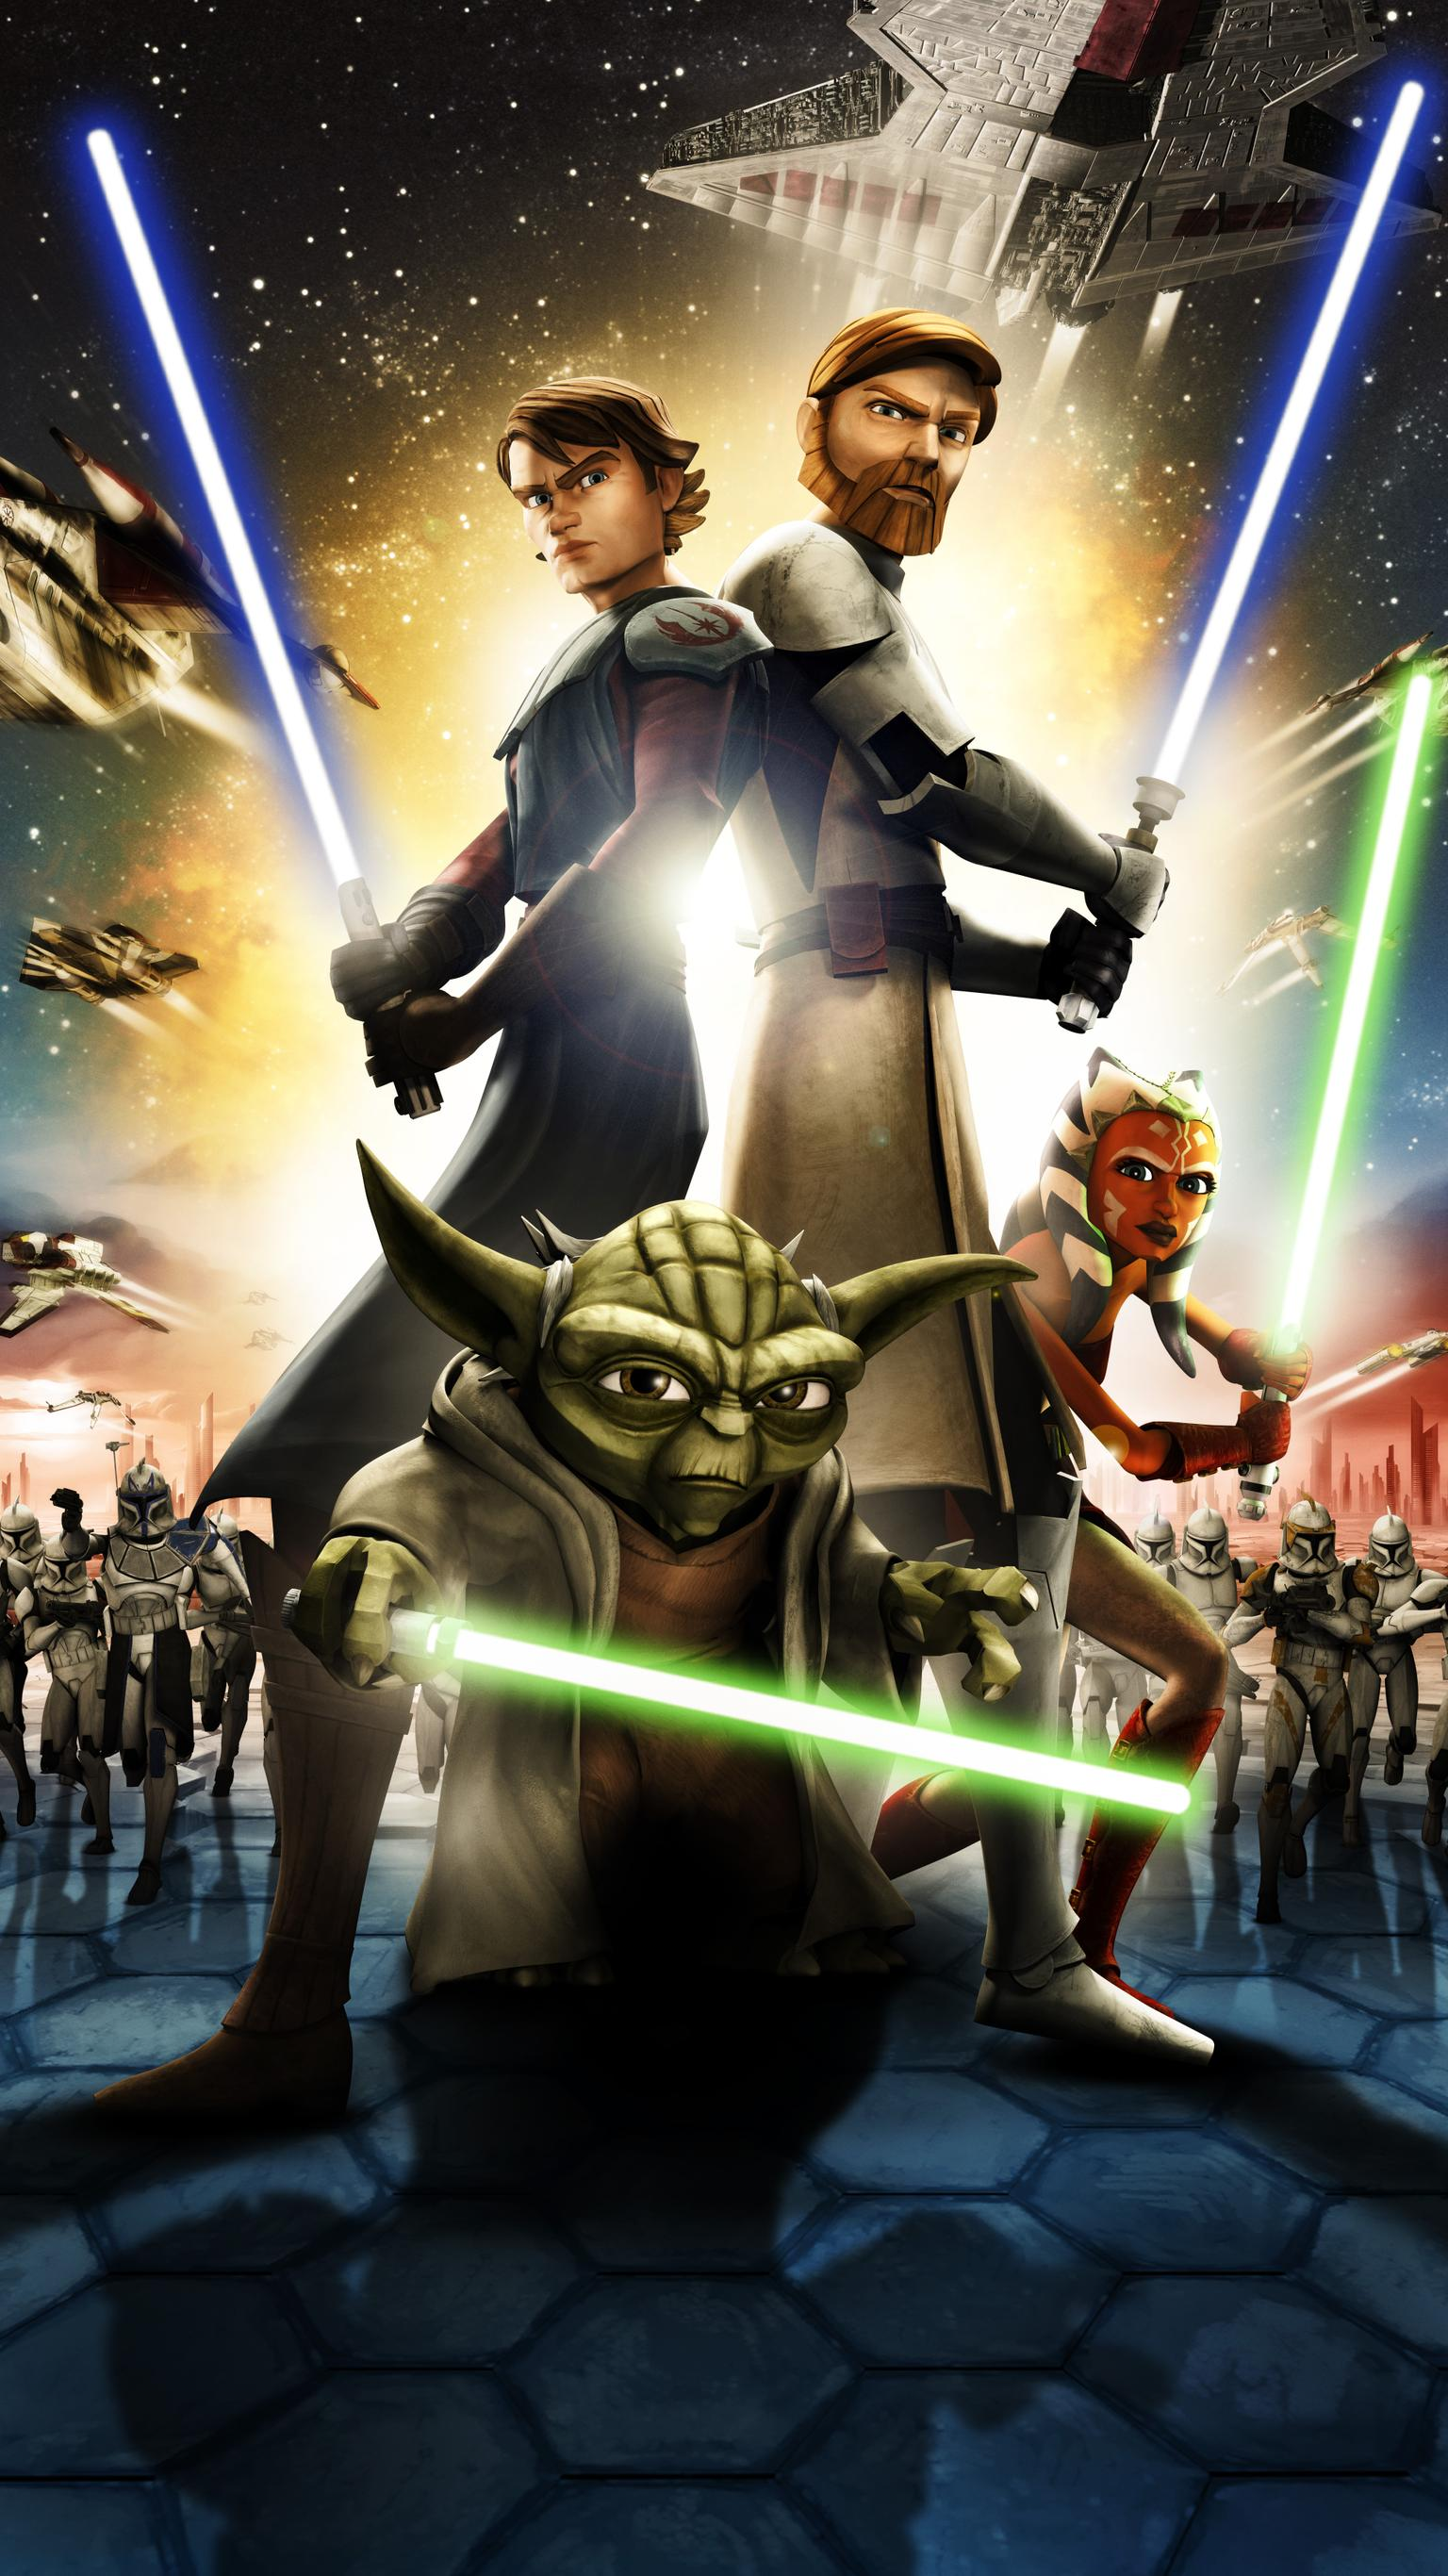 Iphone Star Wars Clone Wars Wallpaper Kolpaper Awesome Free Hd Wallpapers